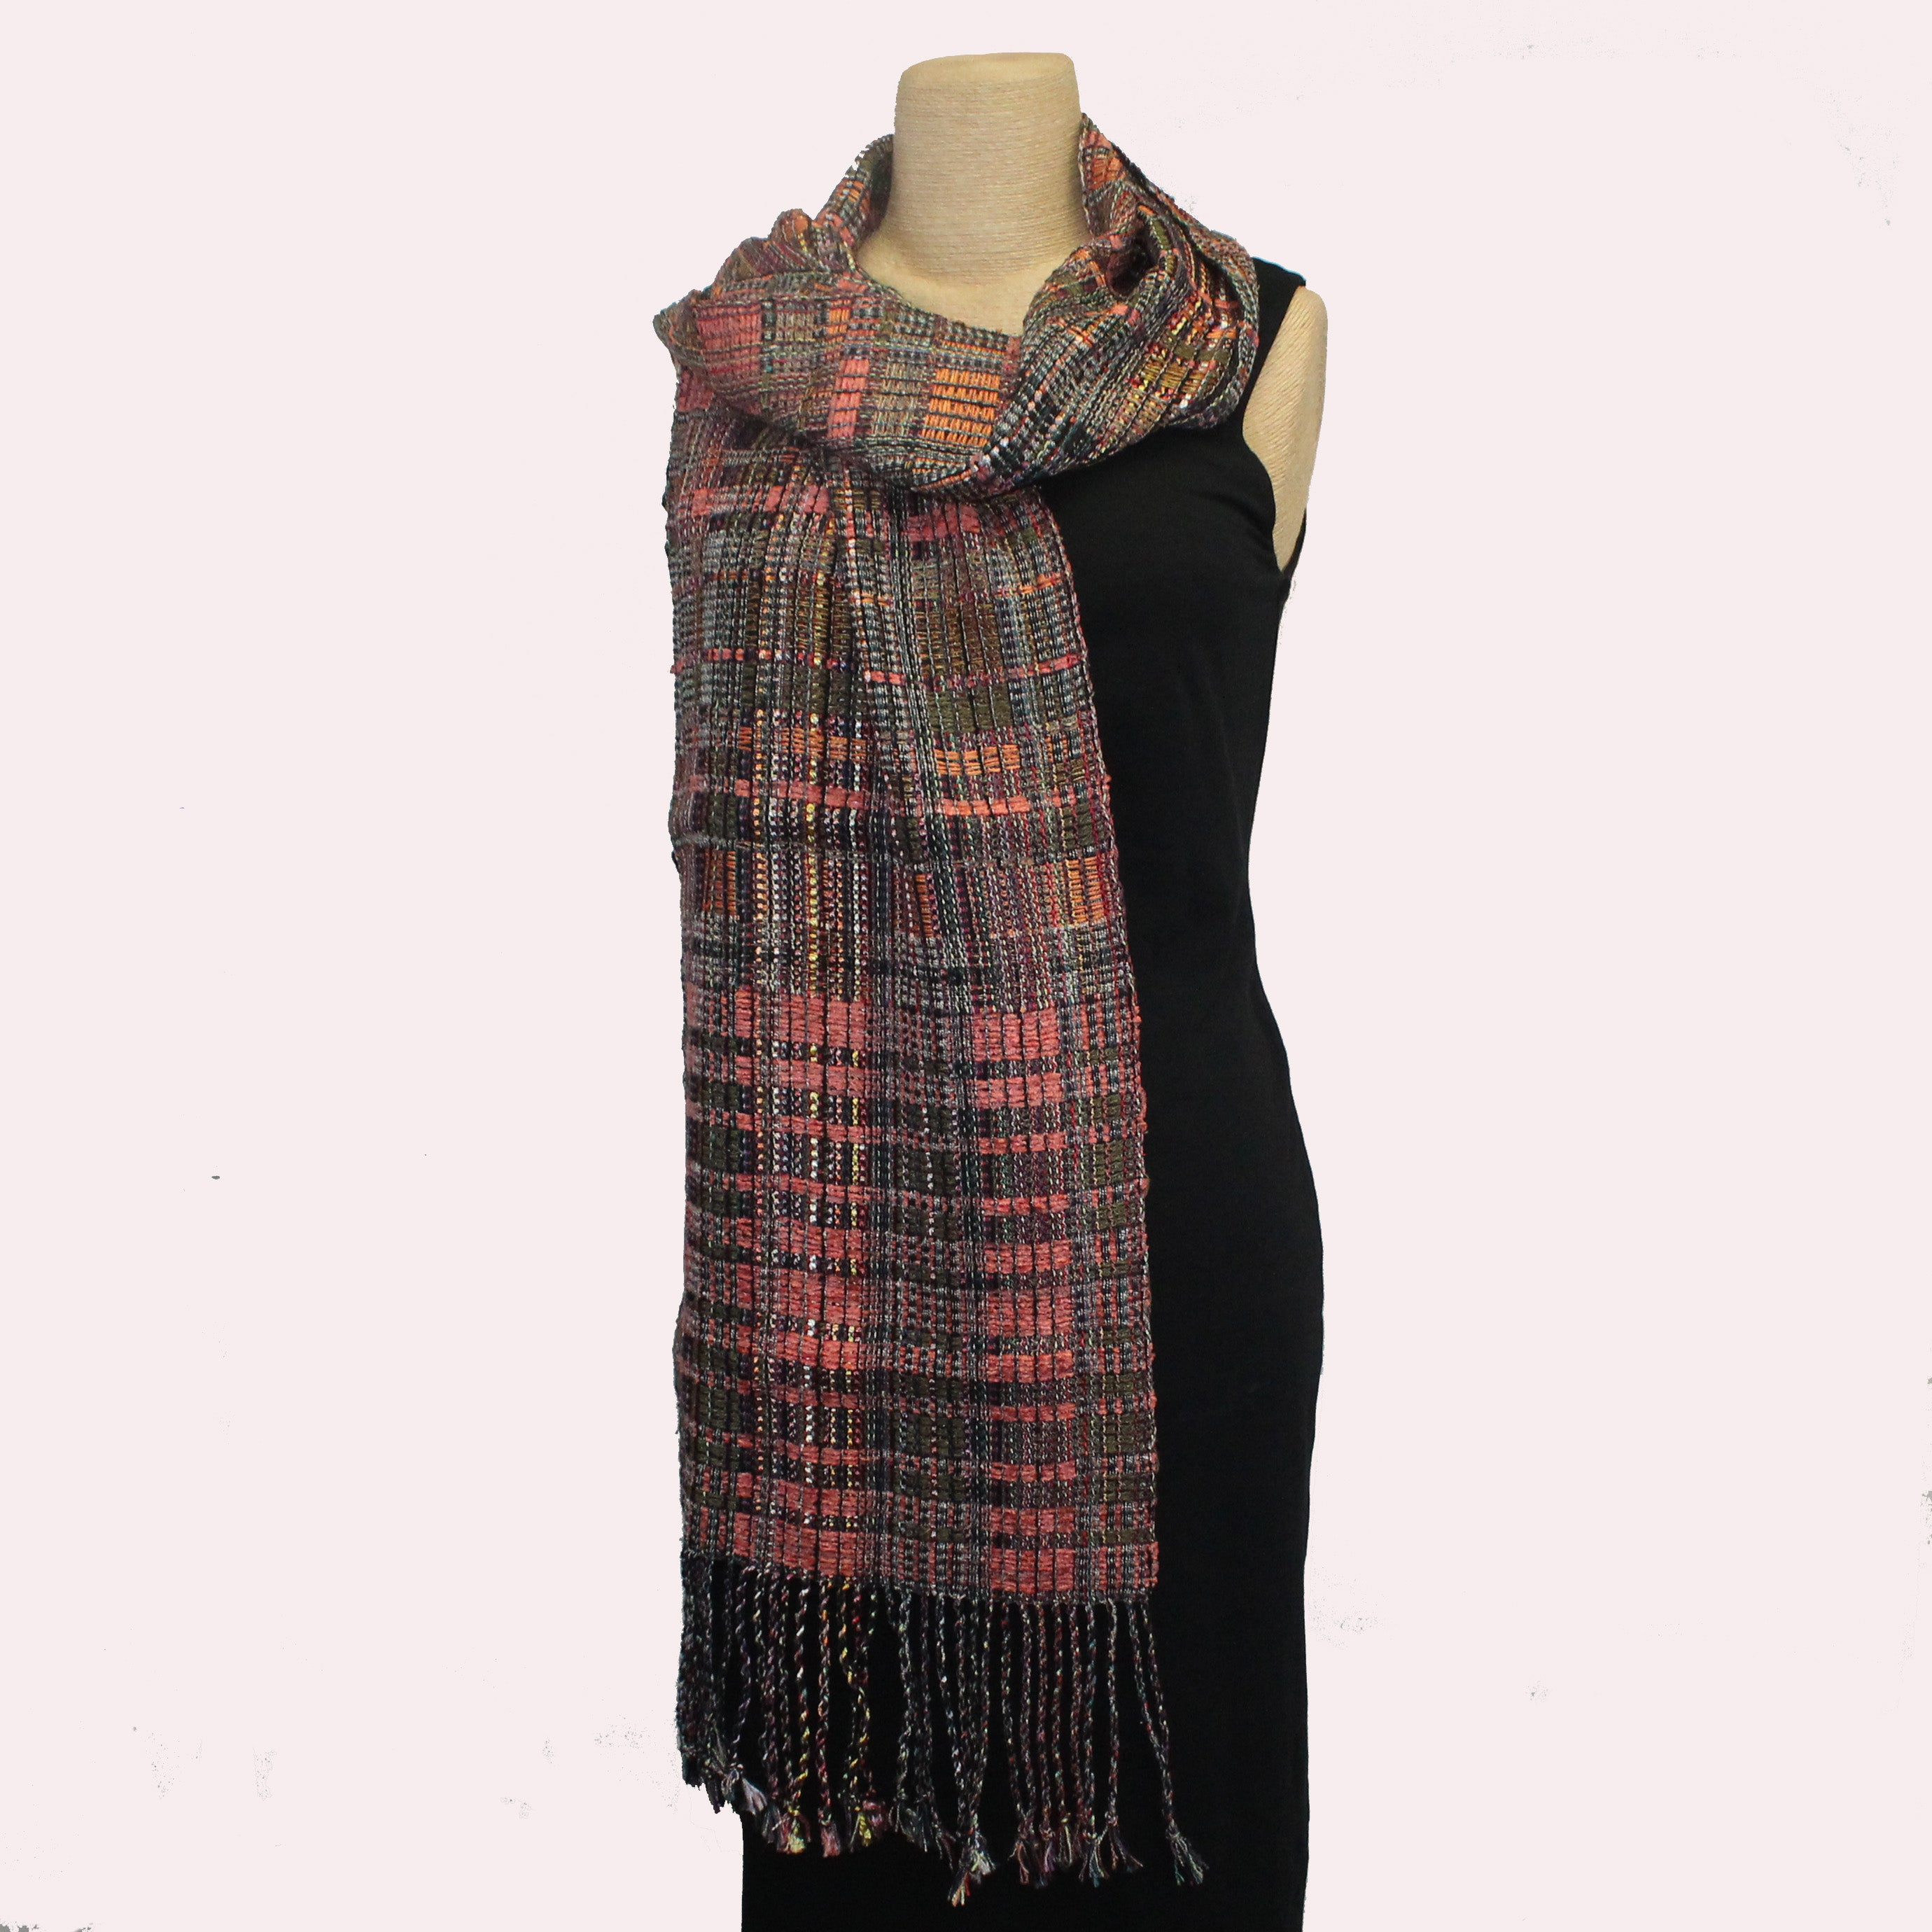 Randall Darwall Scarf, Summer & Winter, Salmon